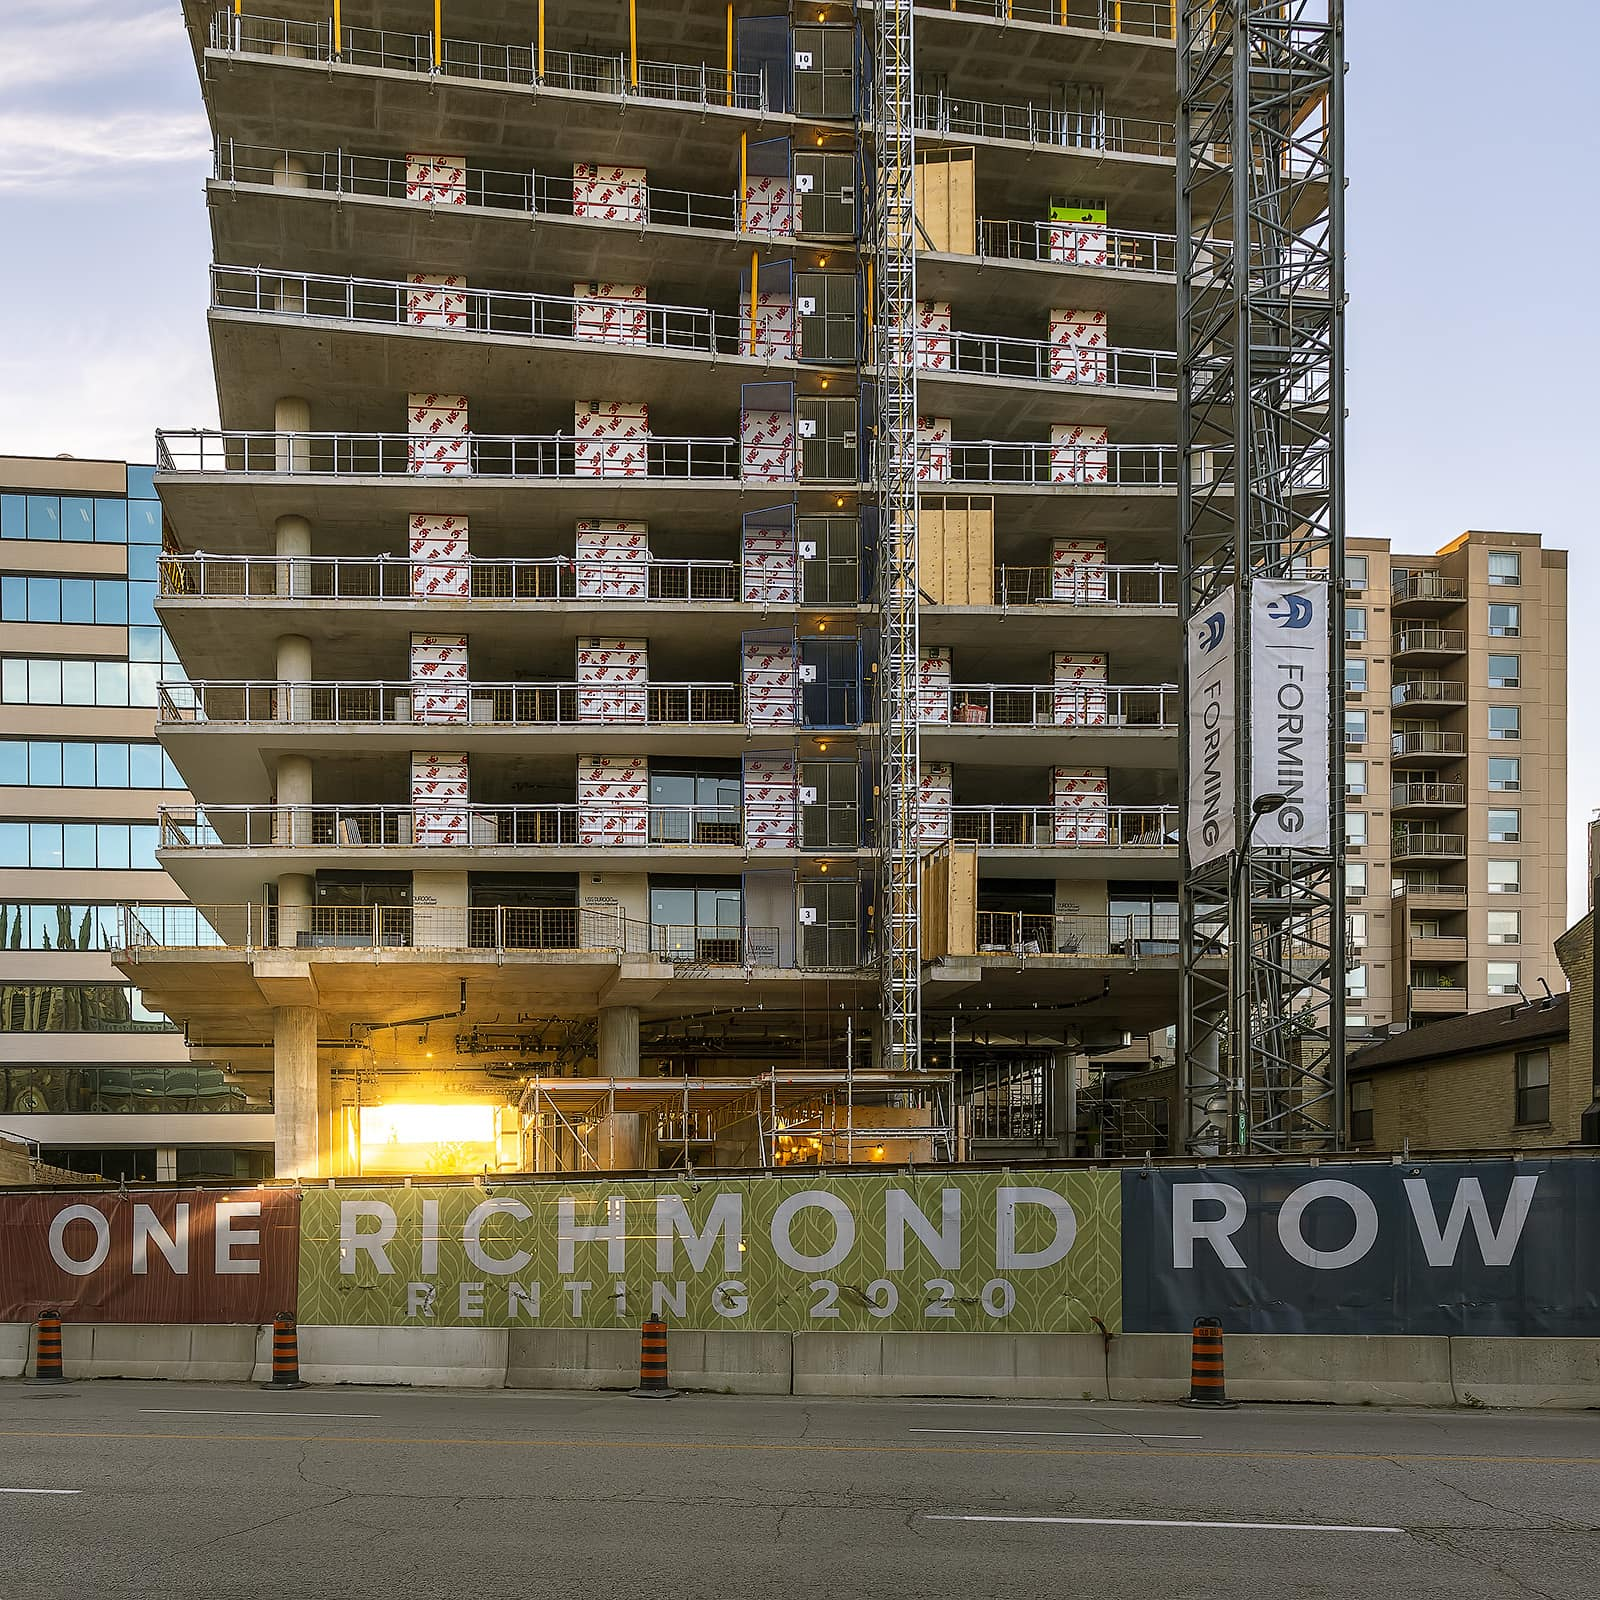 Construction Photo of One Richmond Row in Downtown London as of October 2019 by Scott Webb Photography